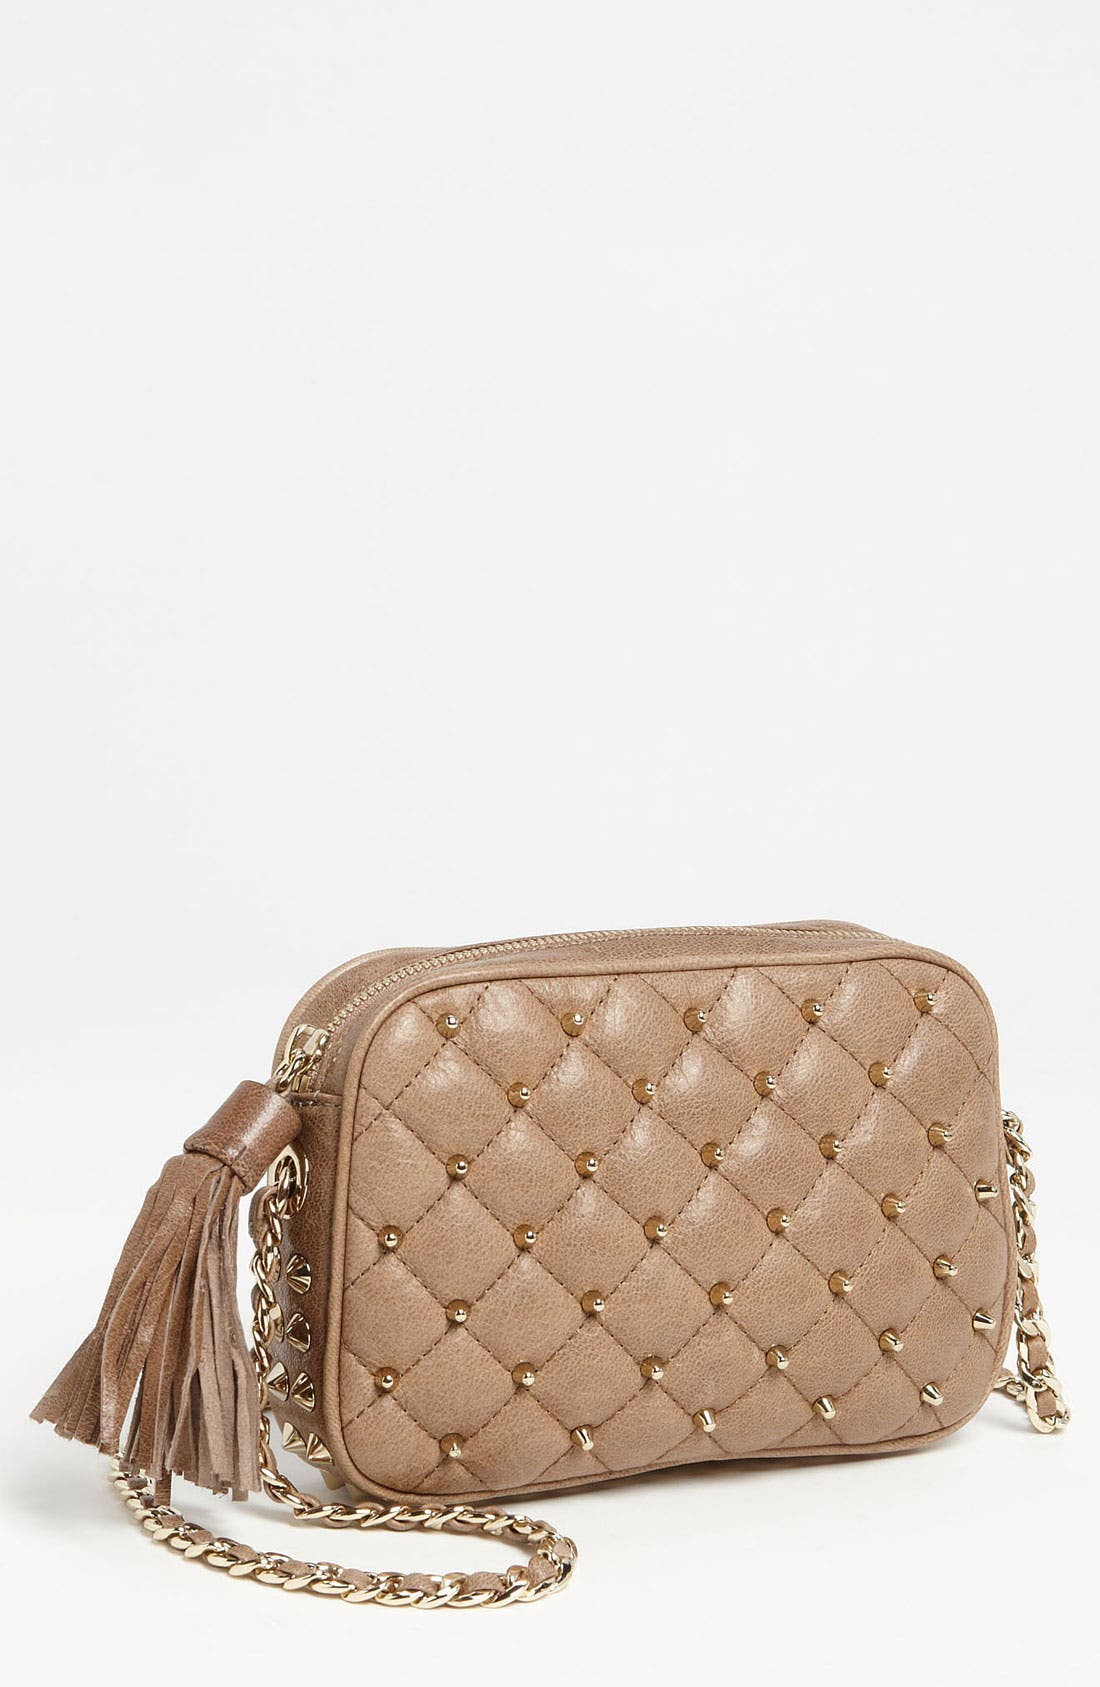 Main Image - Rebecca Minkoff 'Flirty' Crossbody Bag